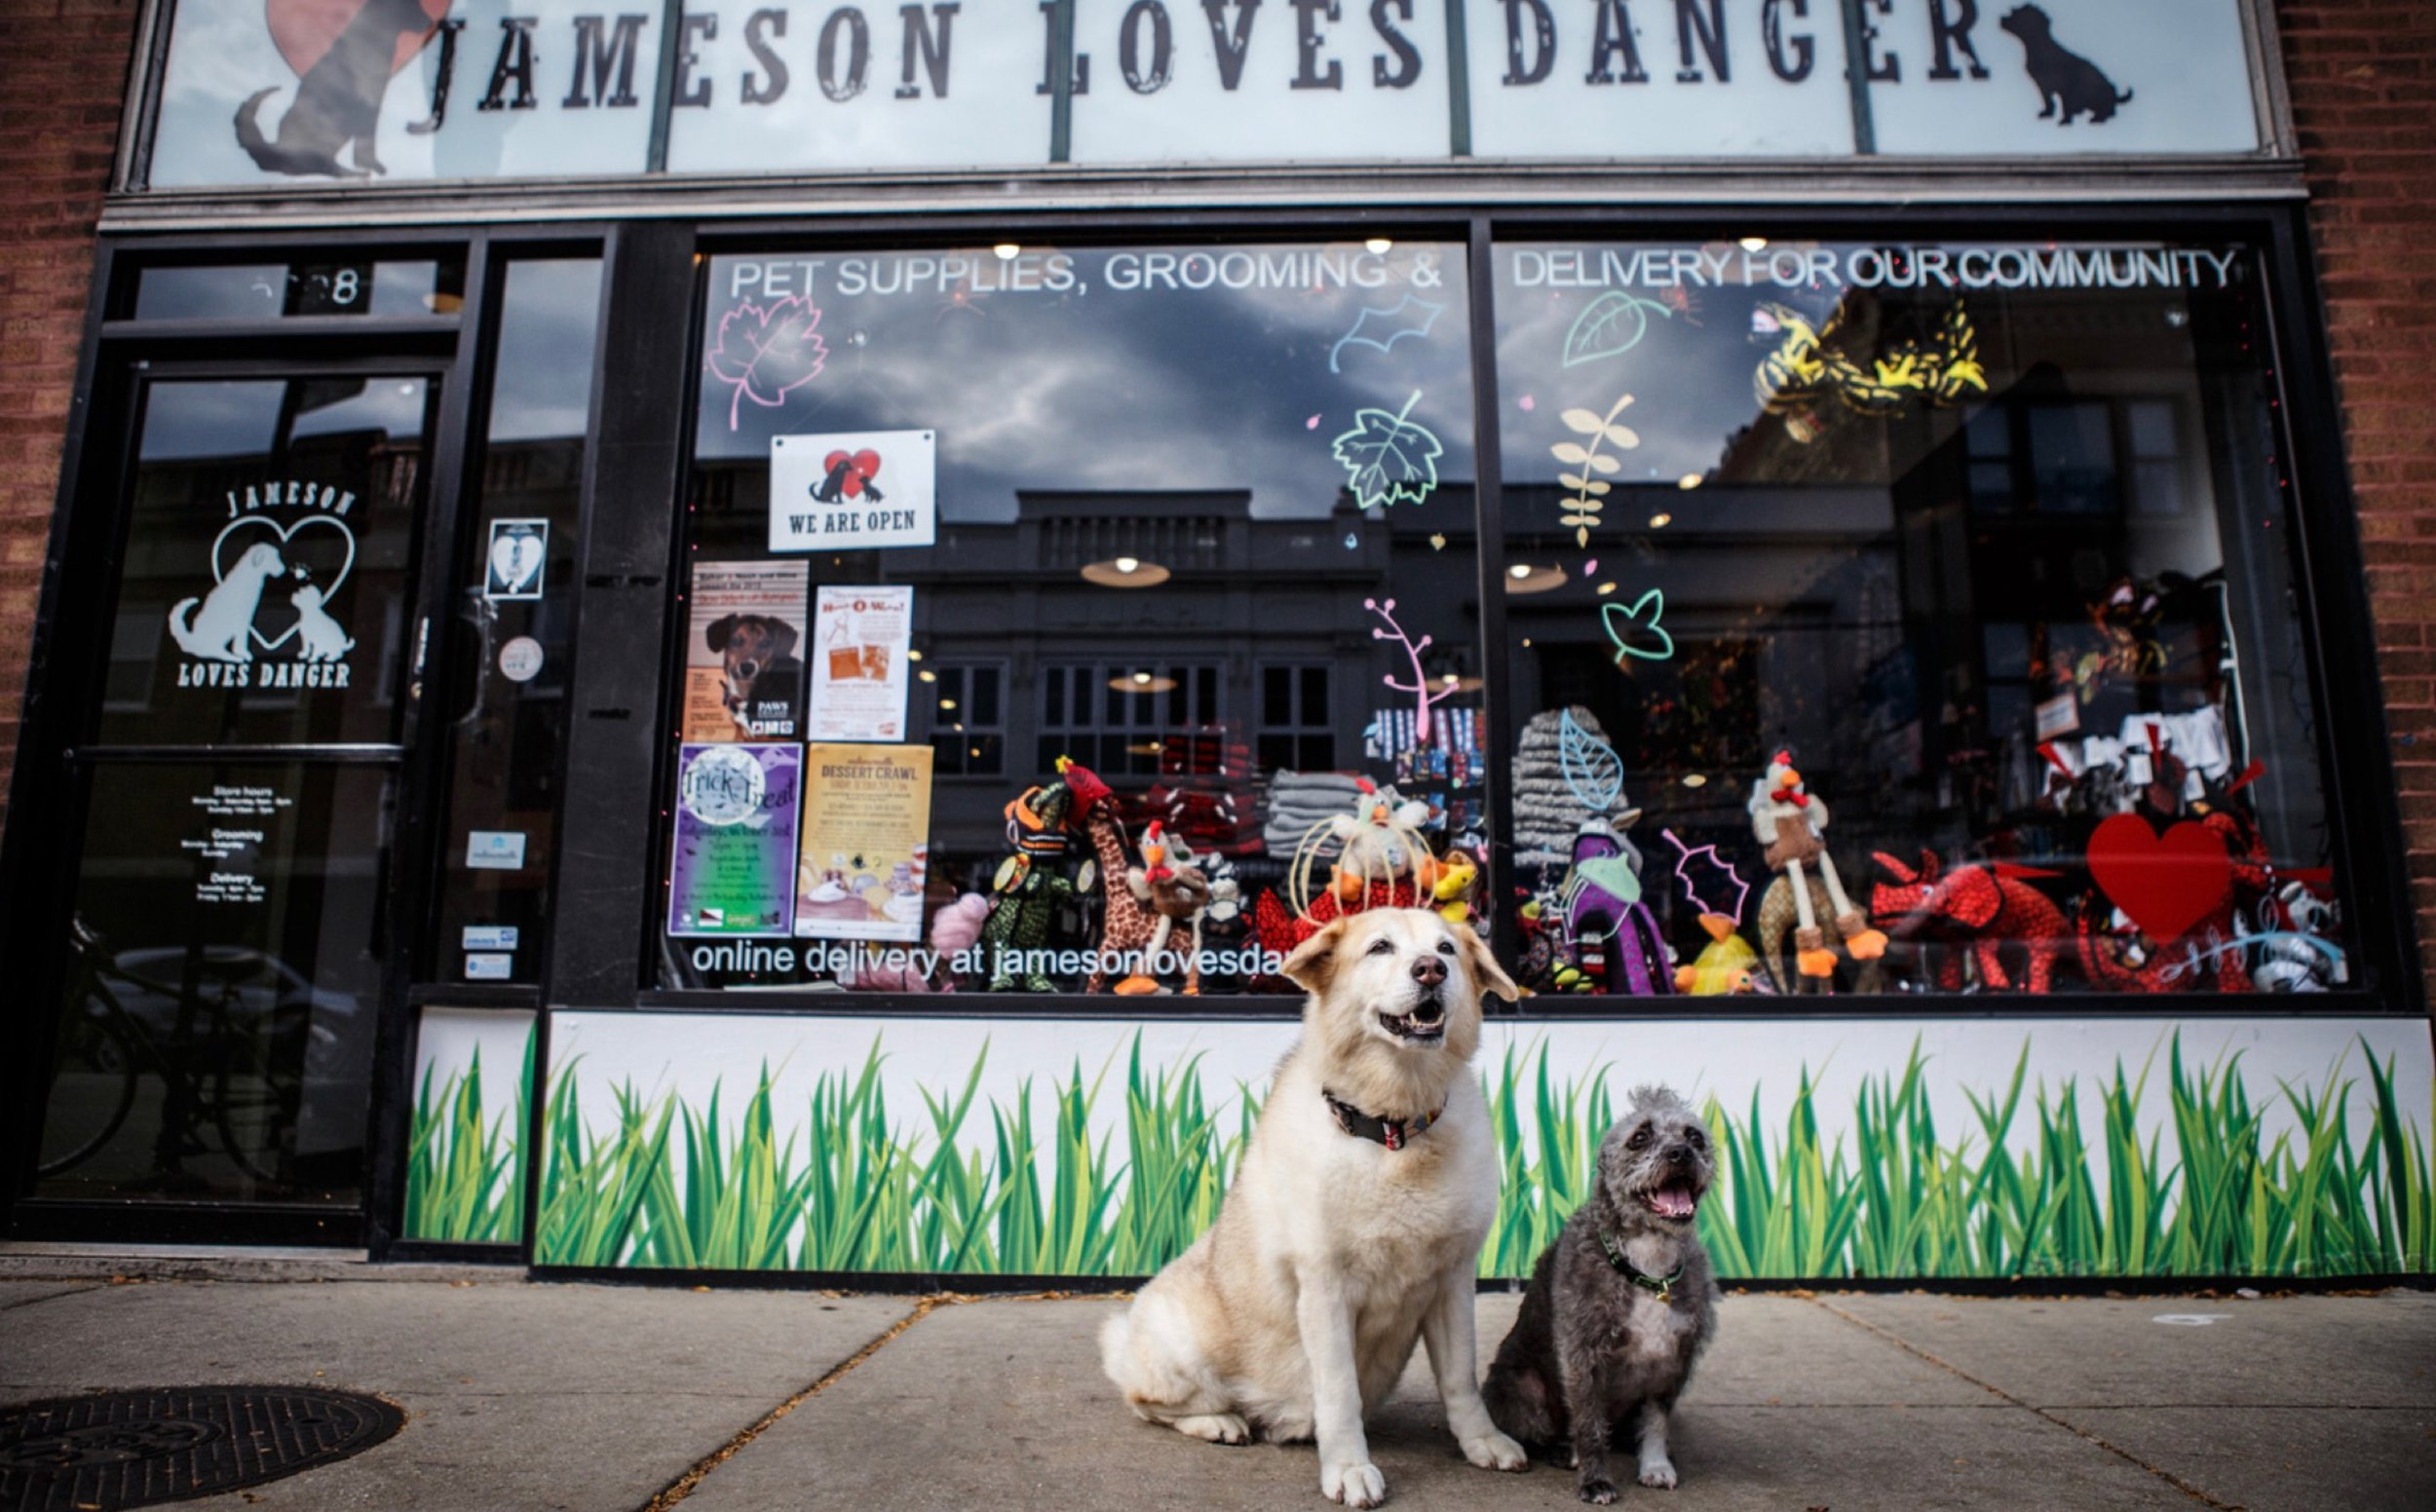 Jameson Loves Danger - A small, independent pet supply and grooming store called Jameson Loves Danger is found in the heart of Andersonville, Chicago, IL. Jameson Loves Danger is committed to the well being and as well as the health of our beloved pets and pet owners. Their goal is to provide quality pet supplies. Jameson Loves Danger offers dog and cat bath service, dog and cat fill service groom, and additional services that will surely make your beloved pets look and feel great.